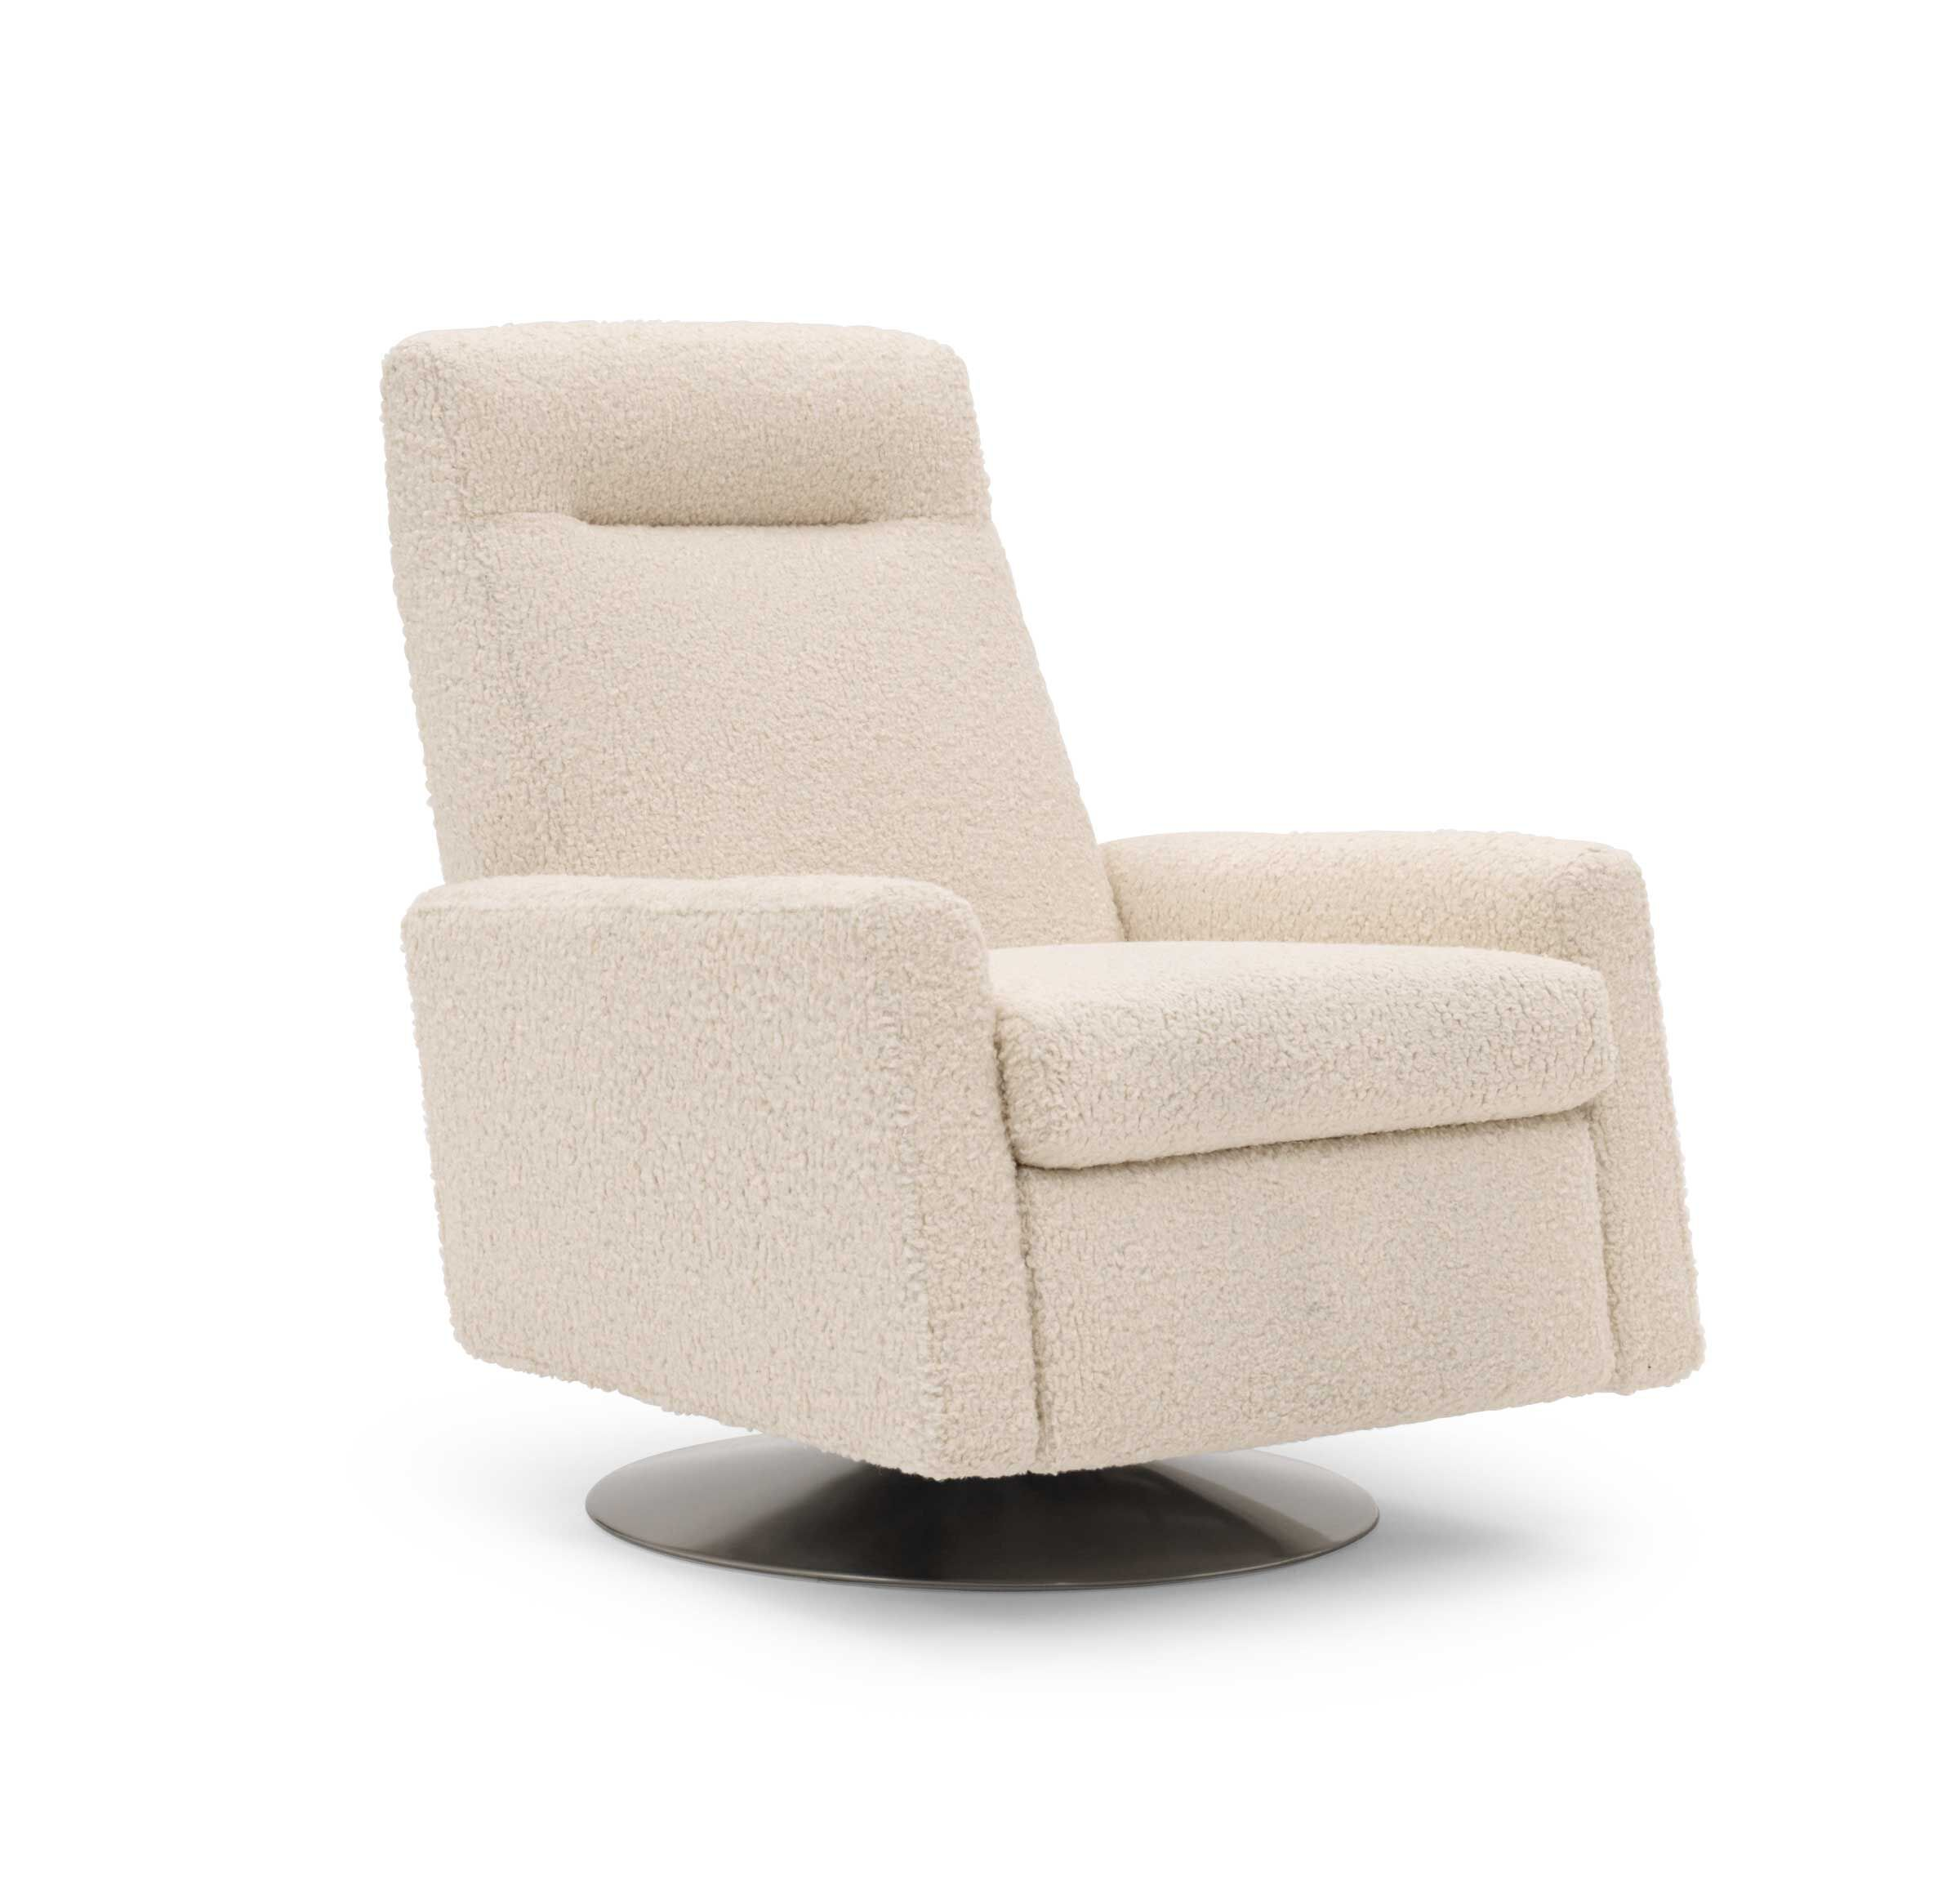 Tilton Electric Recliner Mitchell Gold Bob Williams